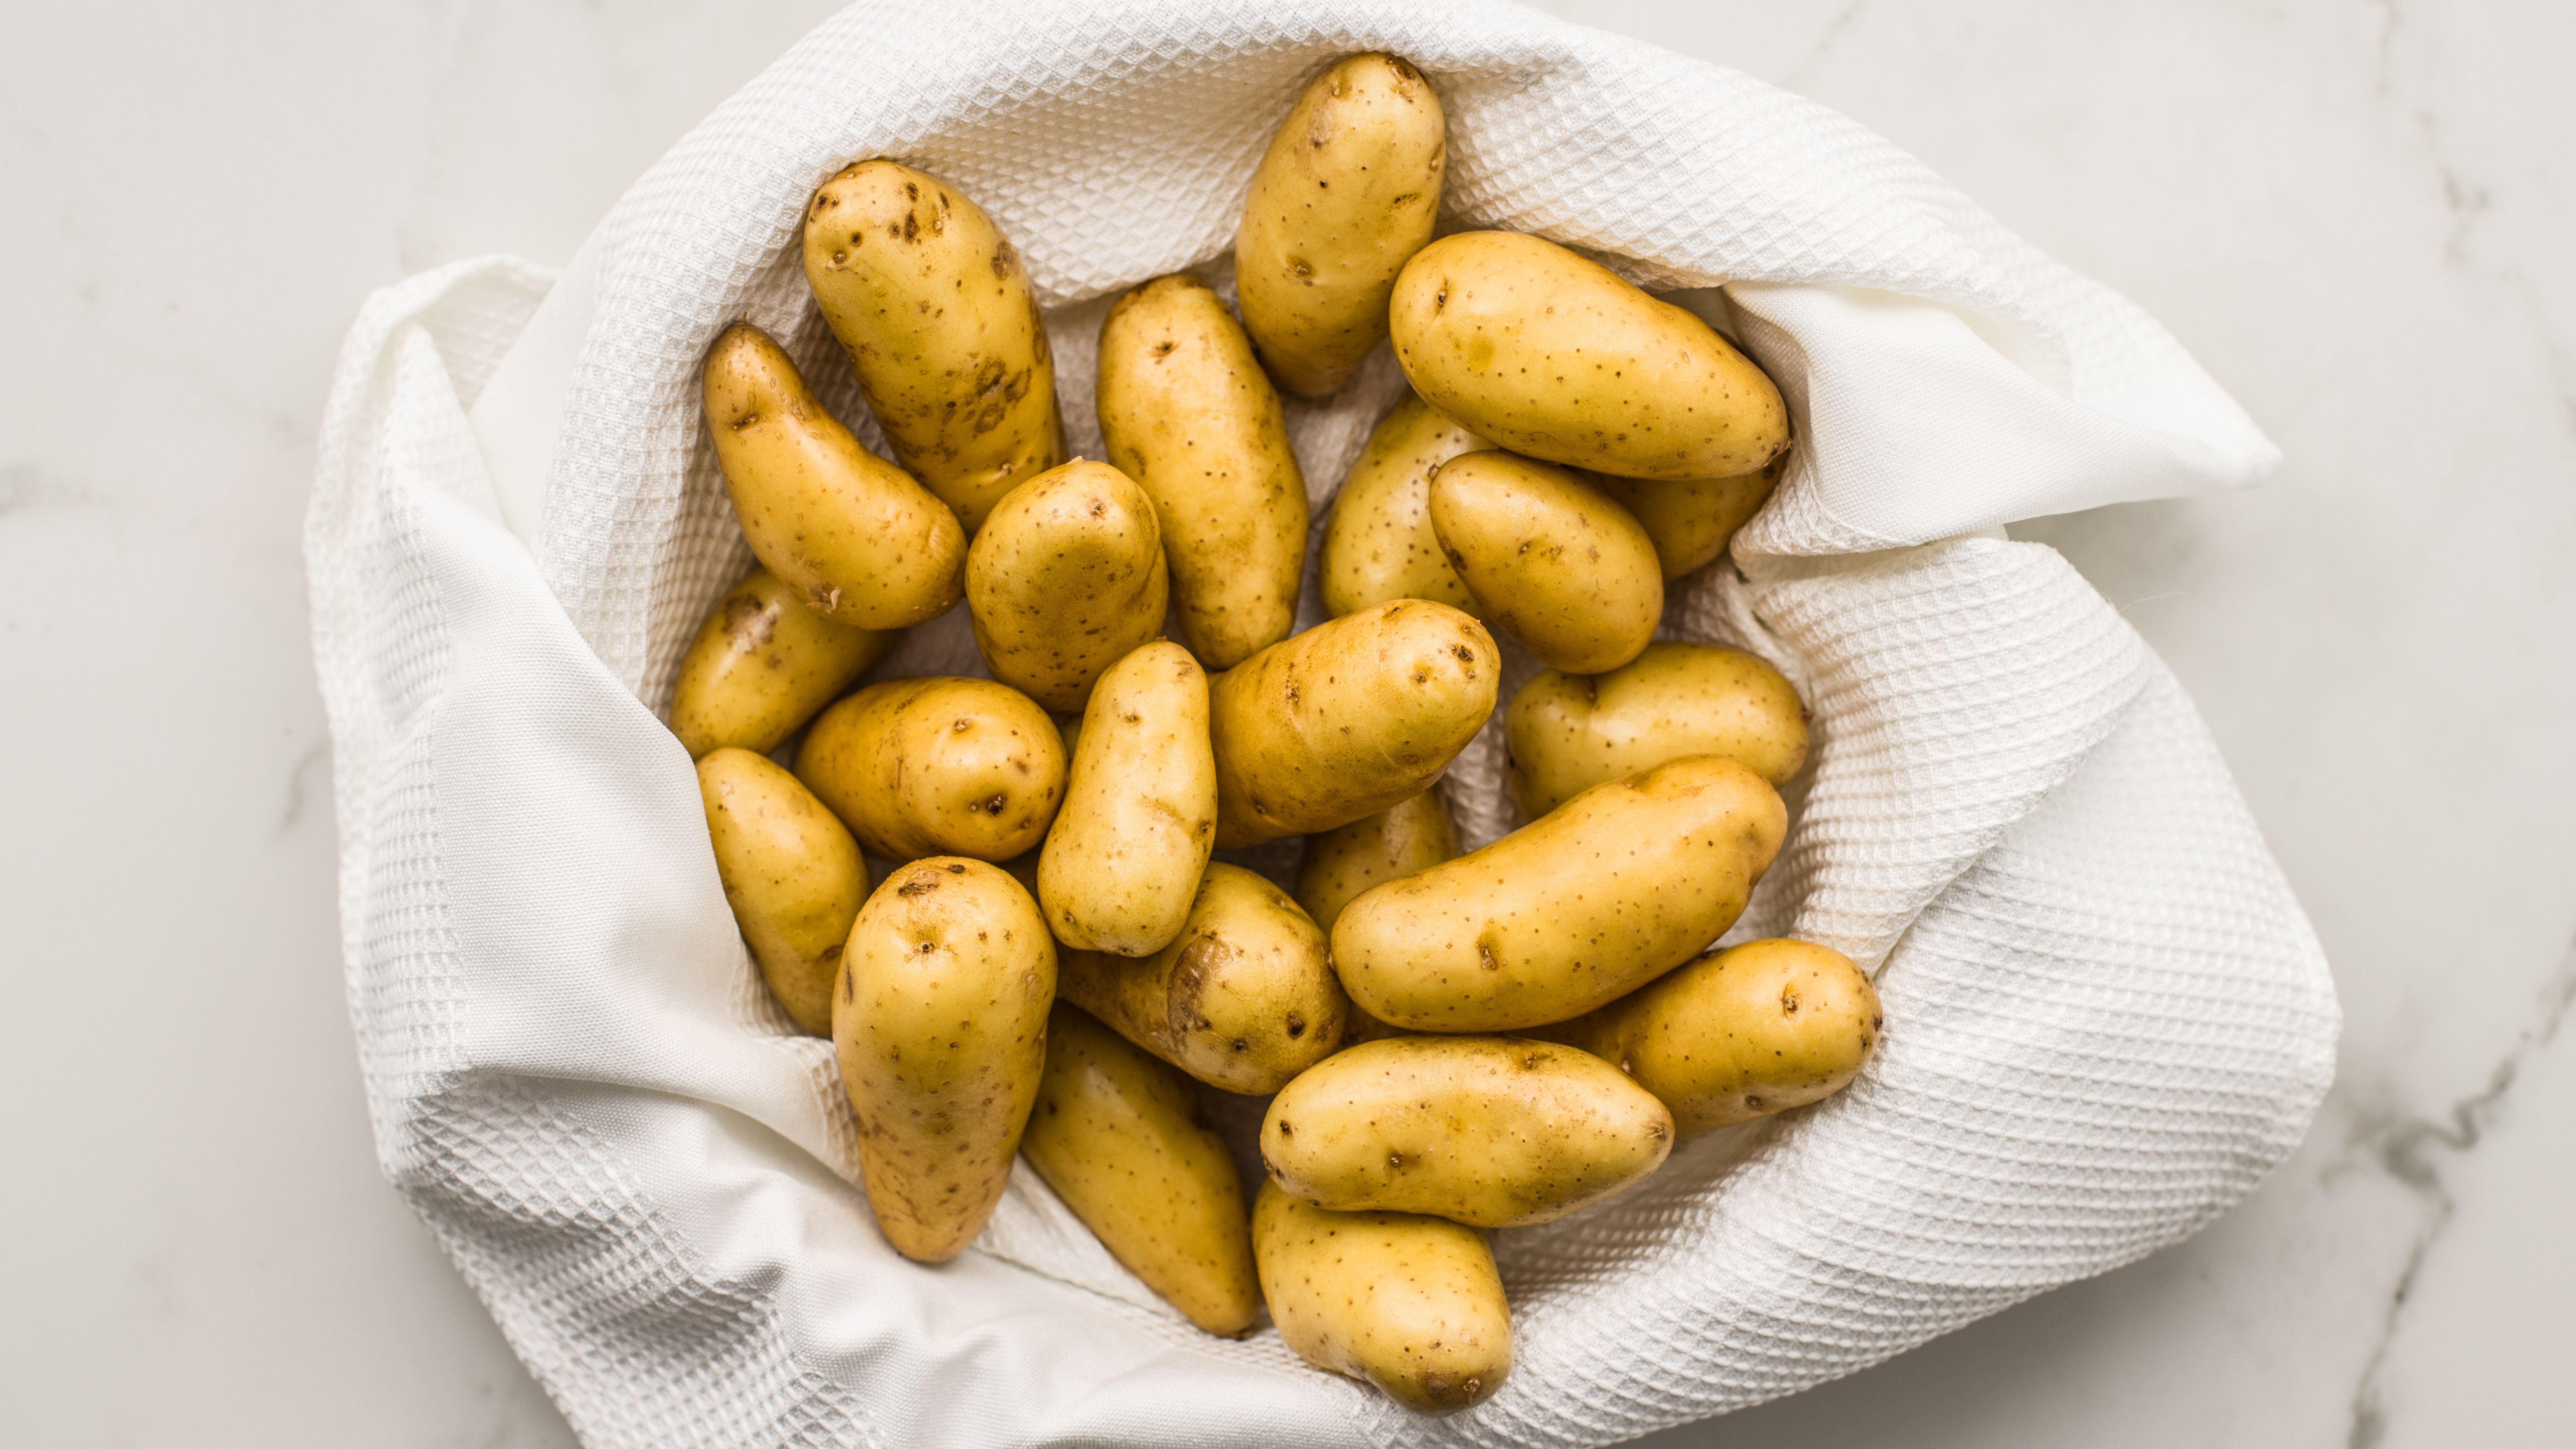 How To Store Potatoes To Keep Them Fresh